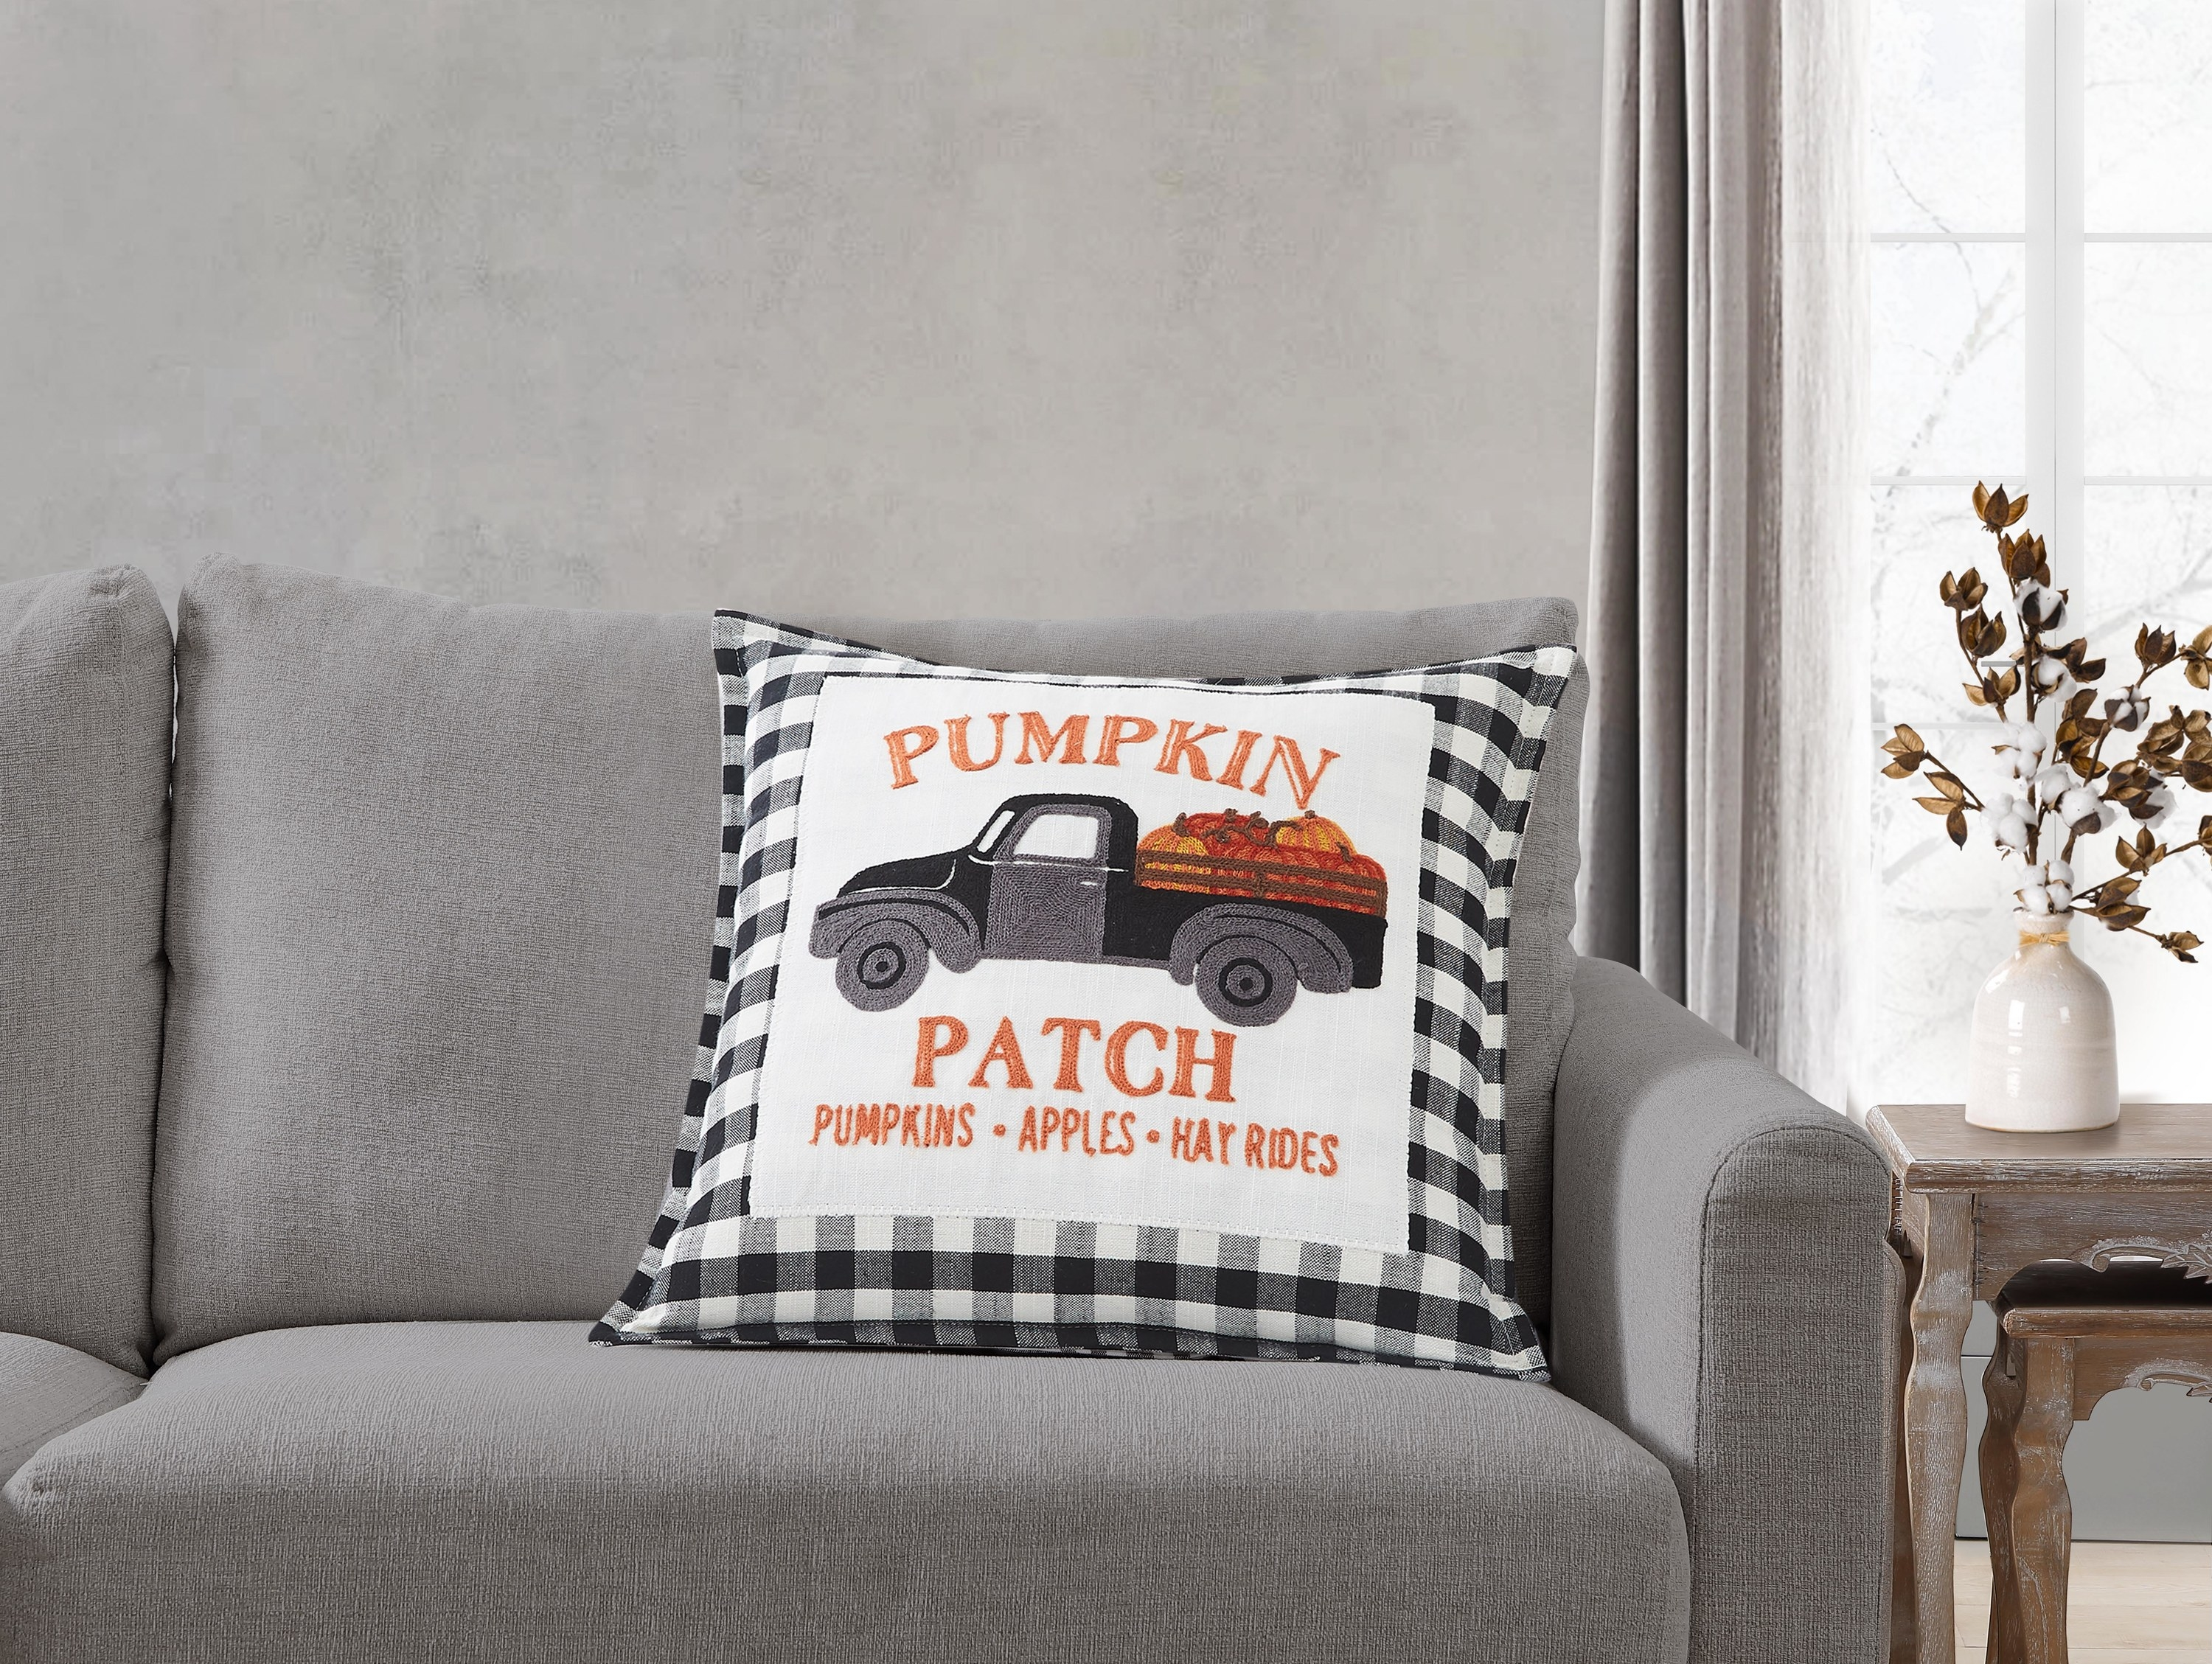 The throw pillow placed on a couch